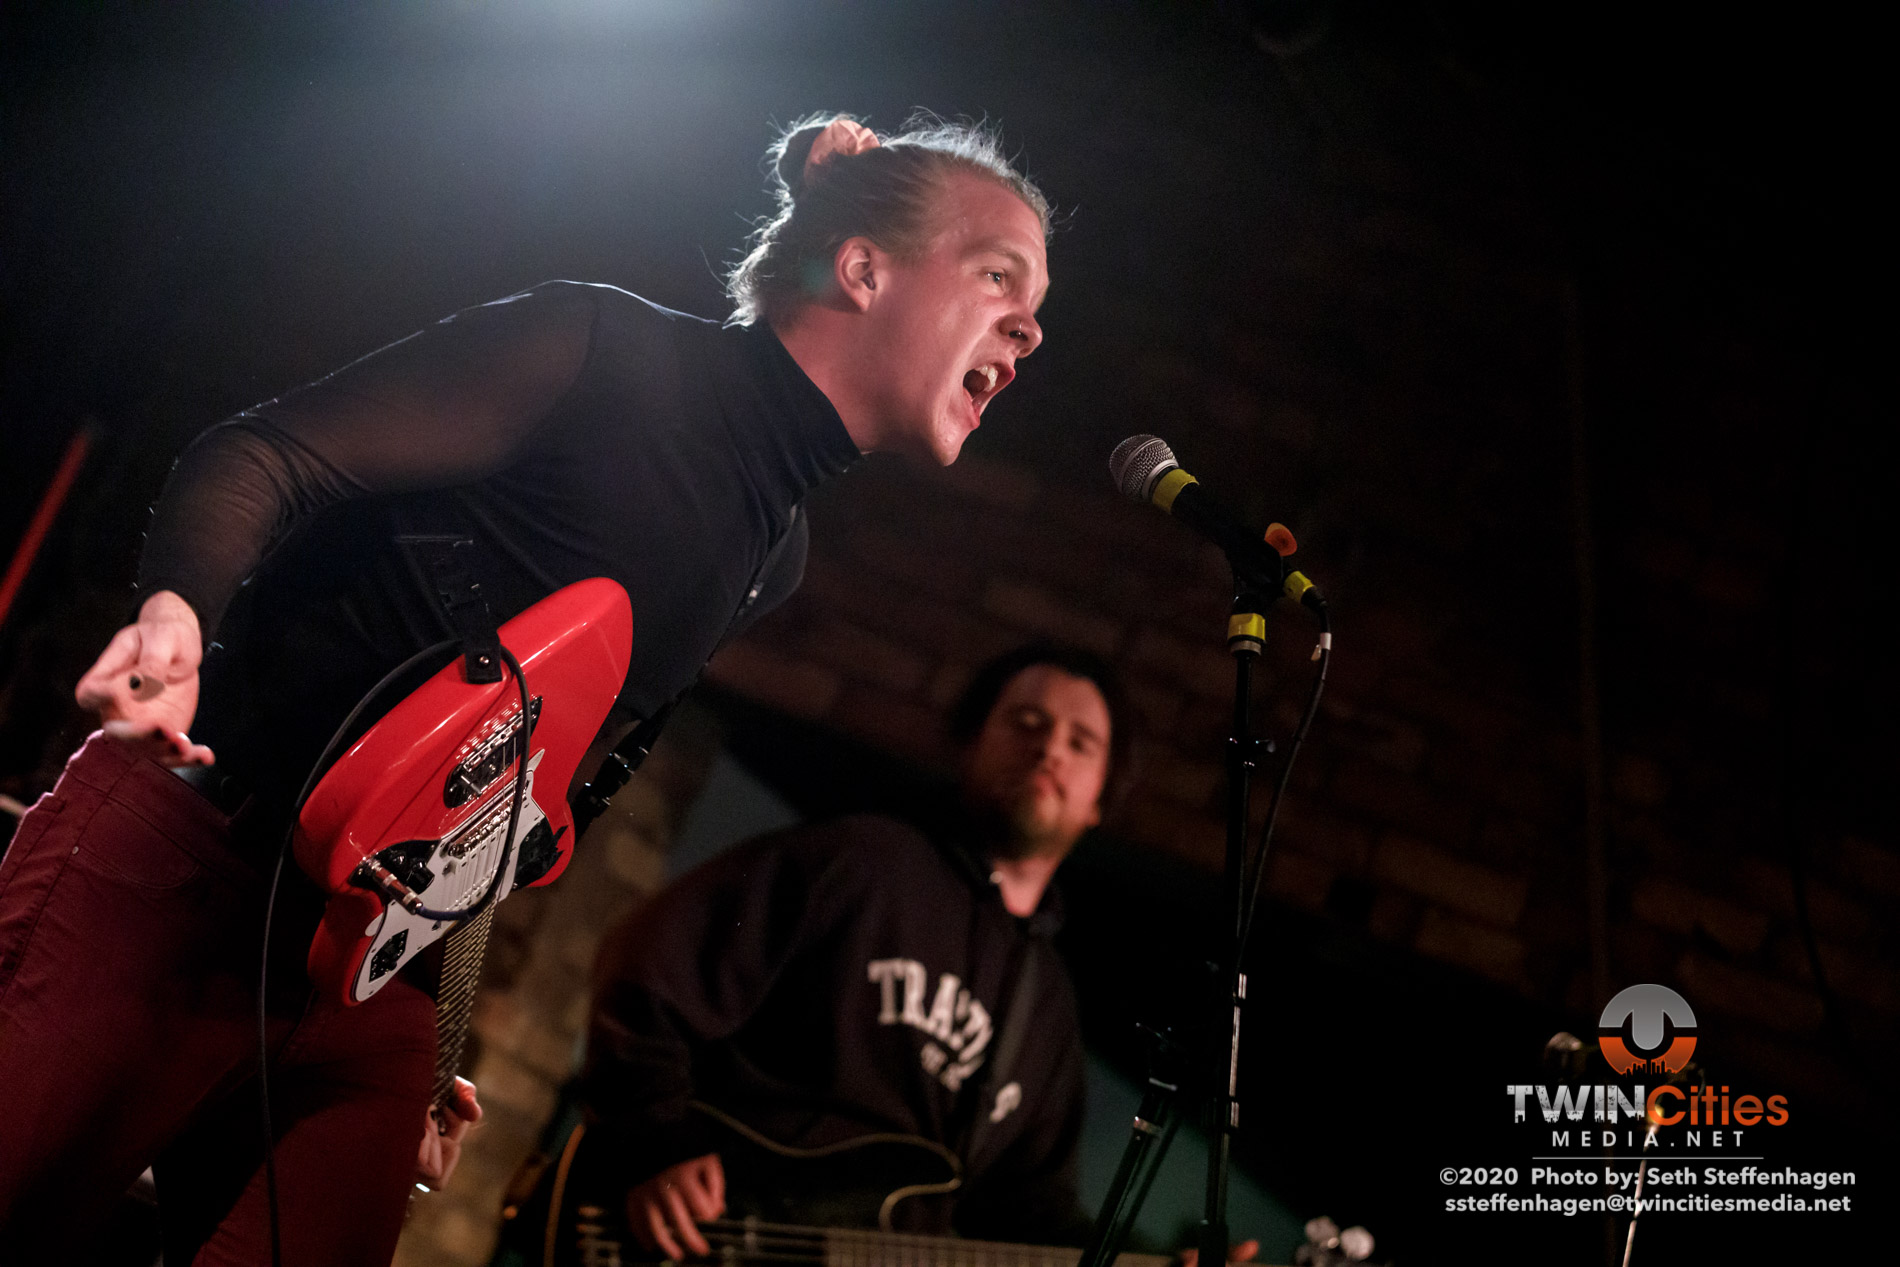 March 1, 2020 - Minneapolis, Minnesota, United States - Vermillion Heights live in concert at Whiskey Junction opening for Coyote Kid.  (Photo by Seth Steffenhagen/Steffenhagen Photography)